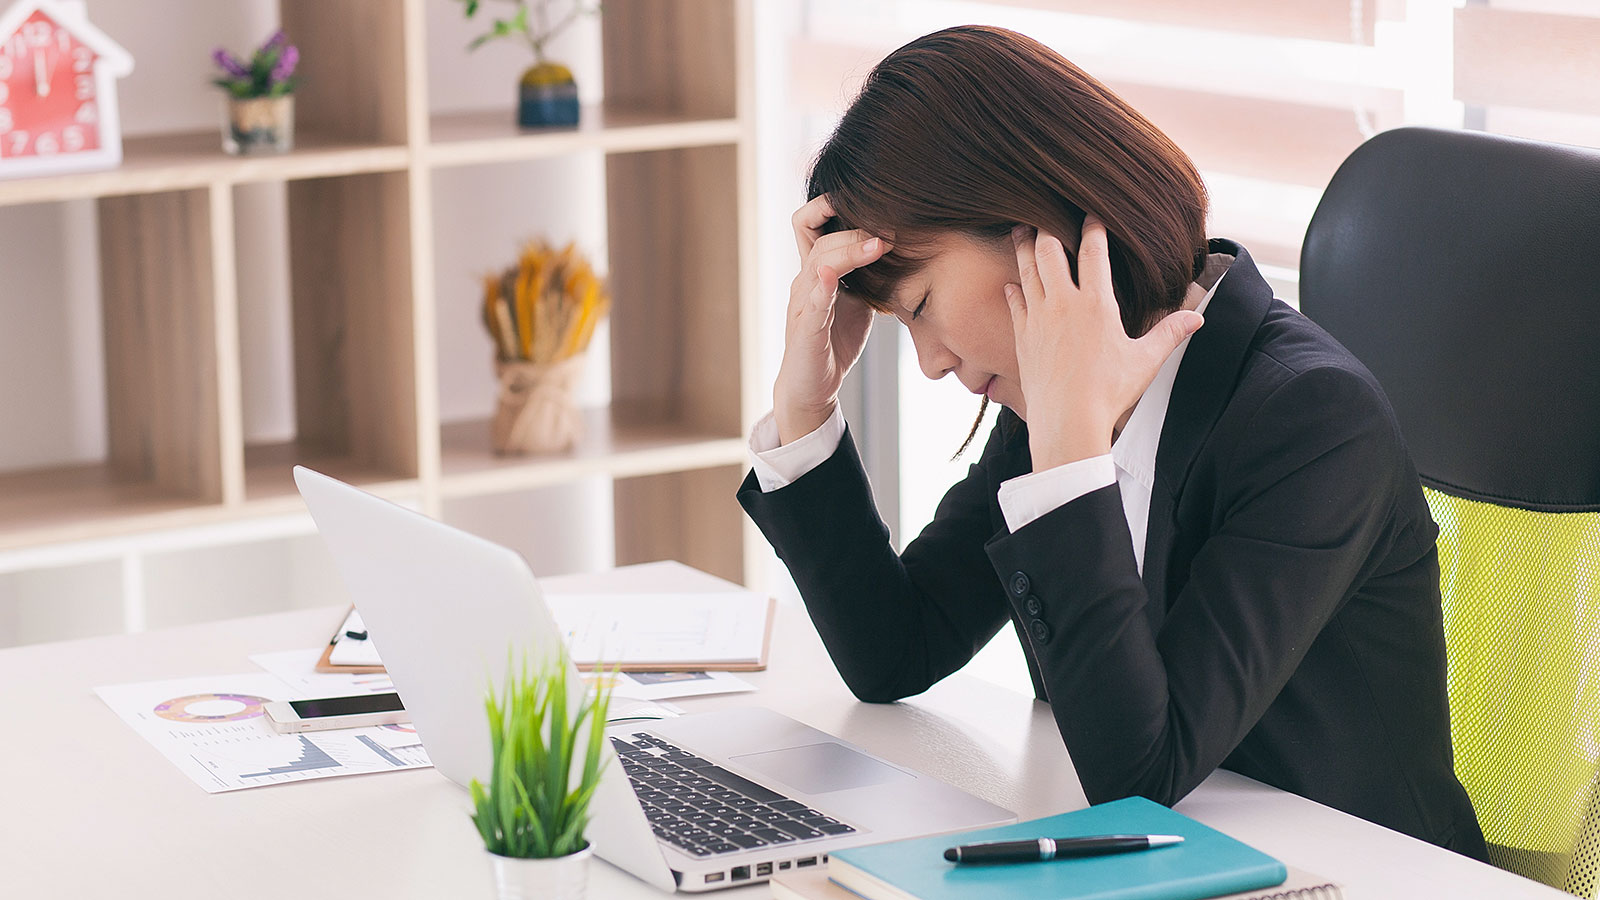 5 effective ways to stop feeling overwhelmed